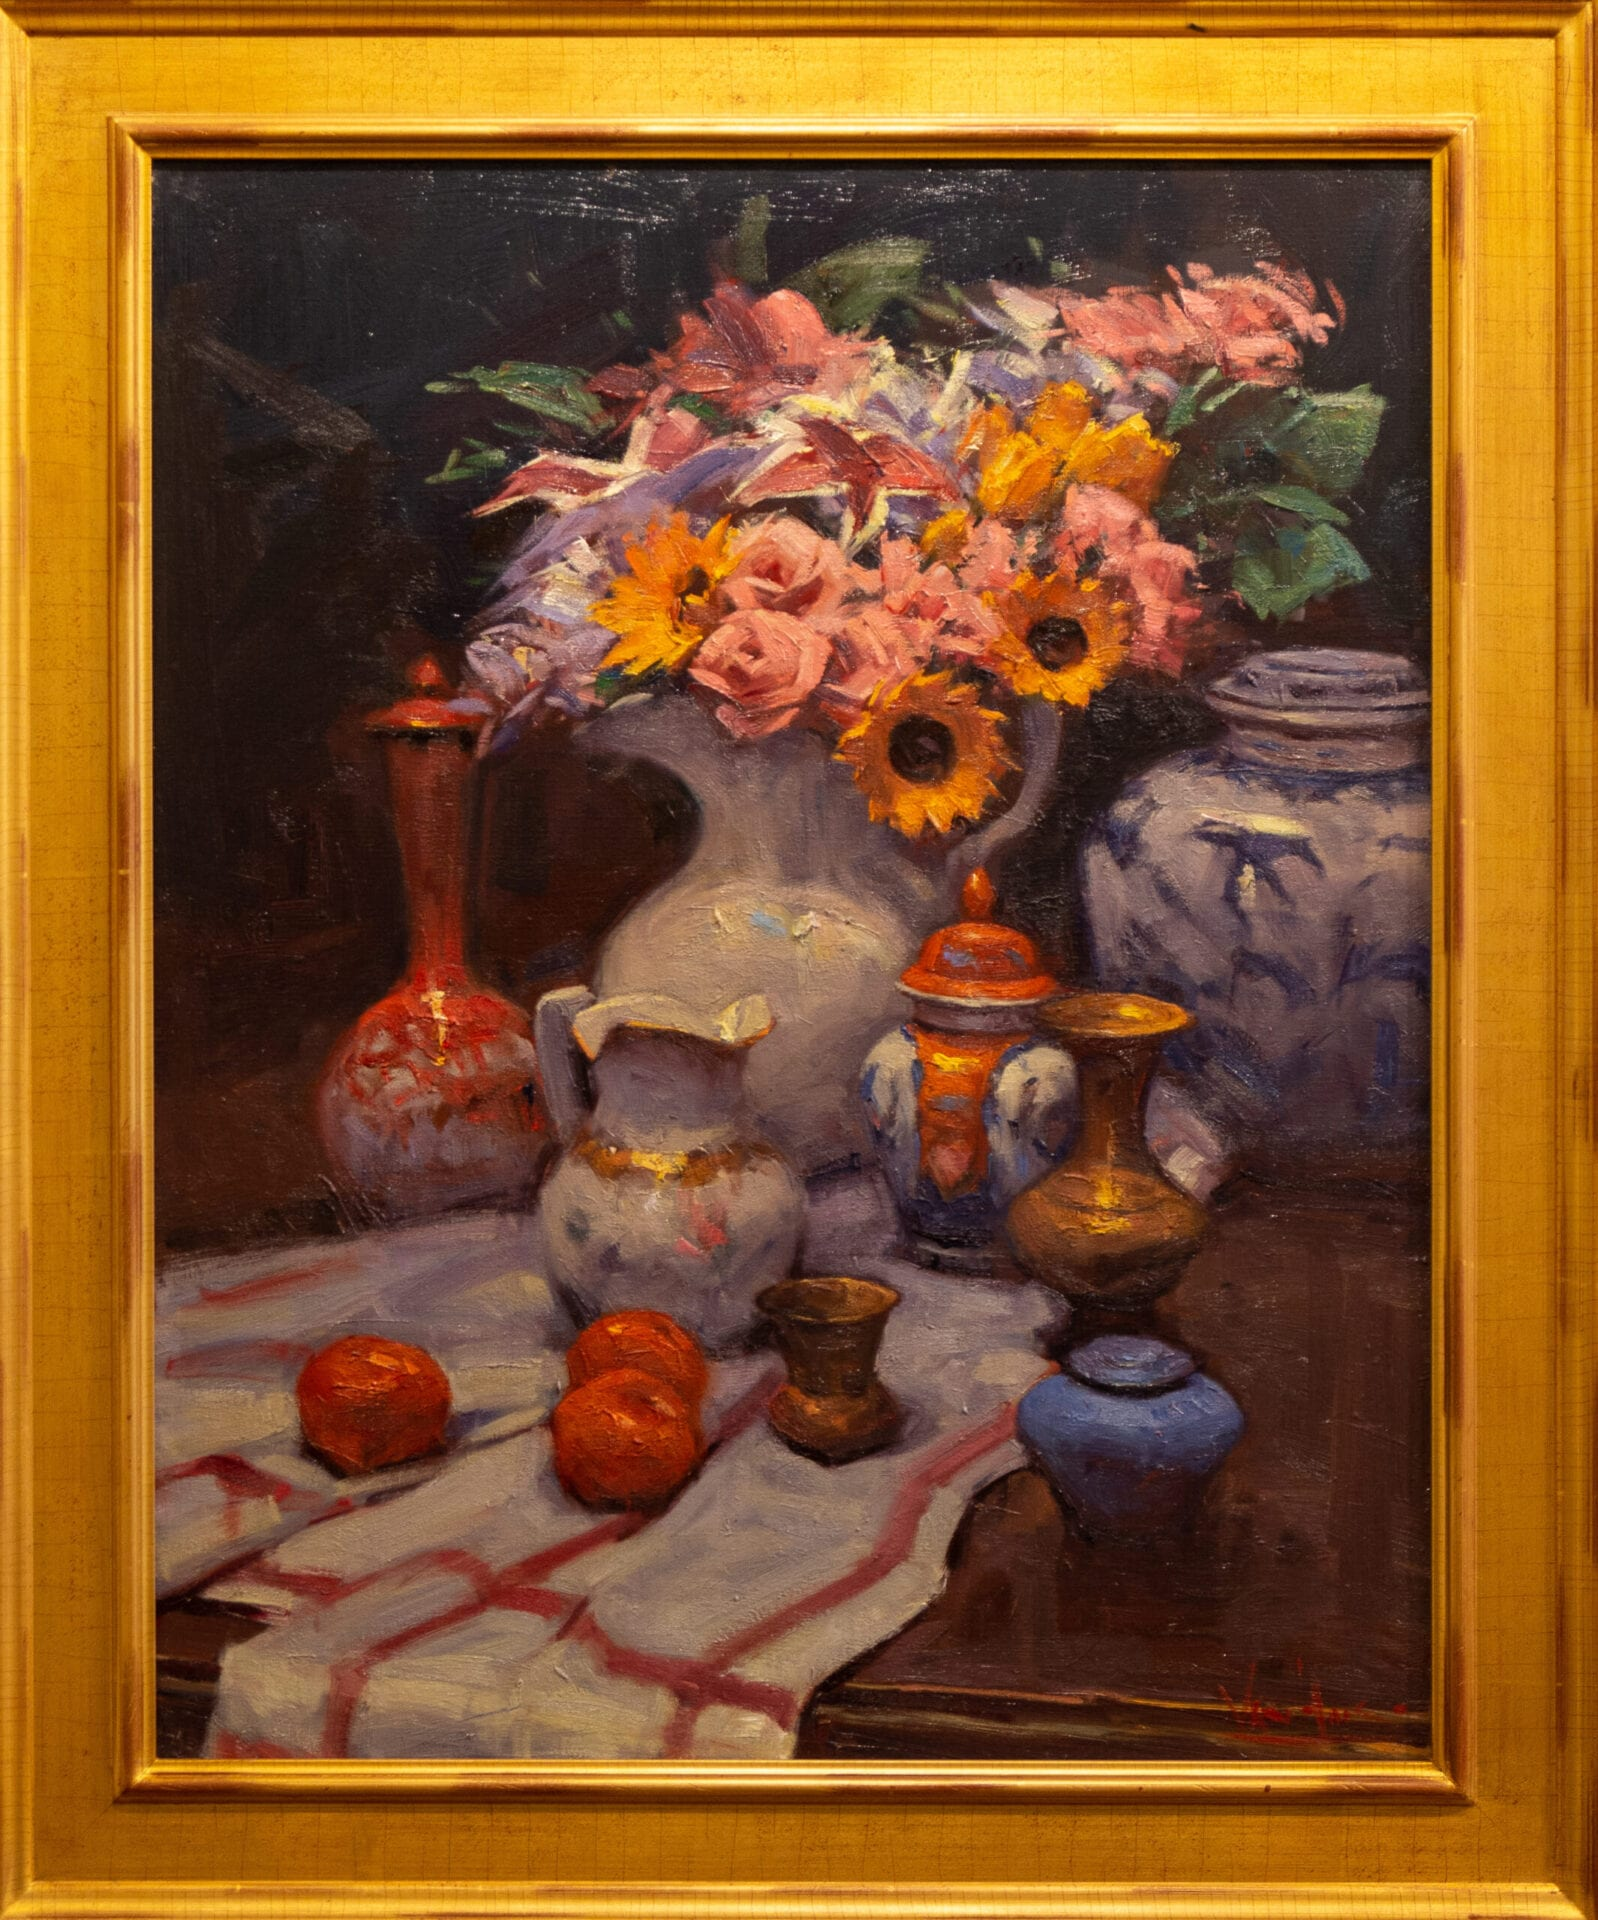 Still Life with Large Vase | George Van Hook | Oil | 30 x 24""